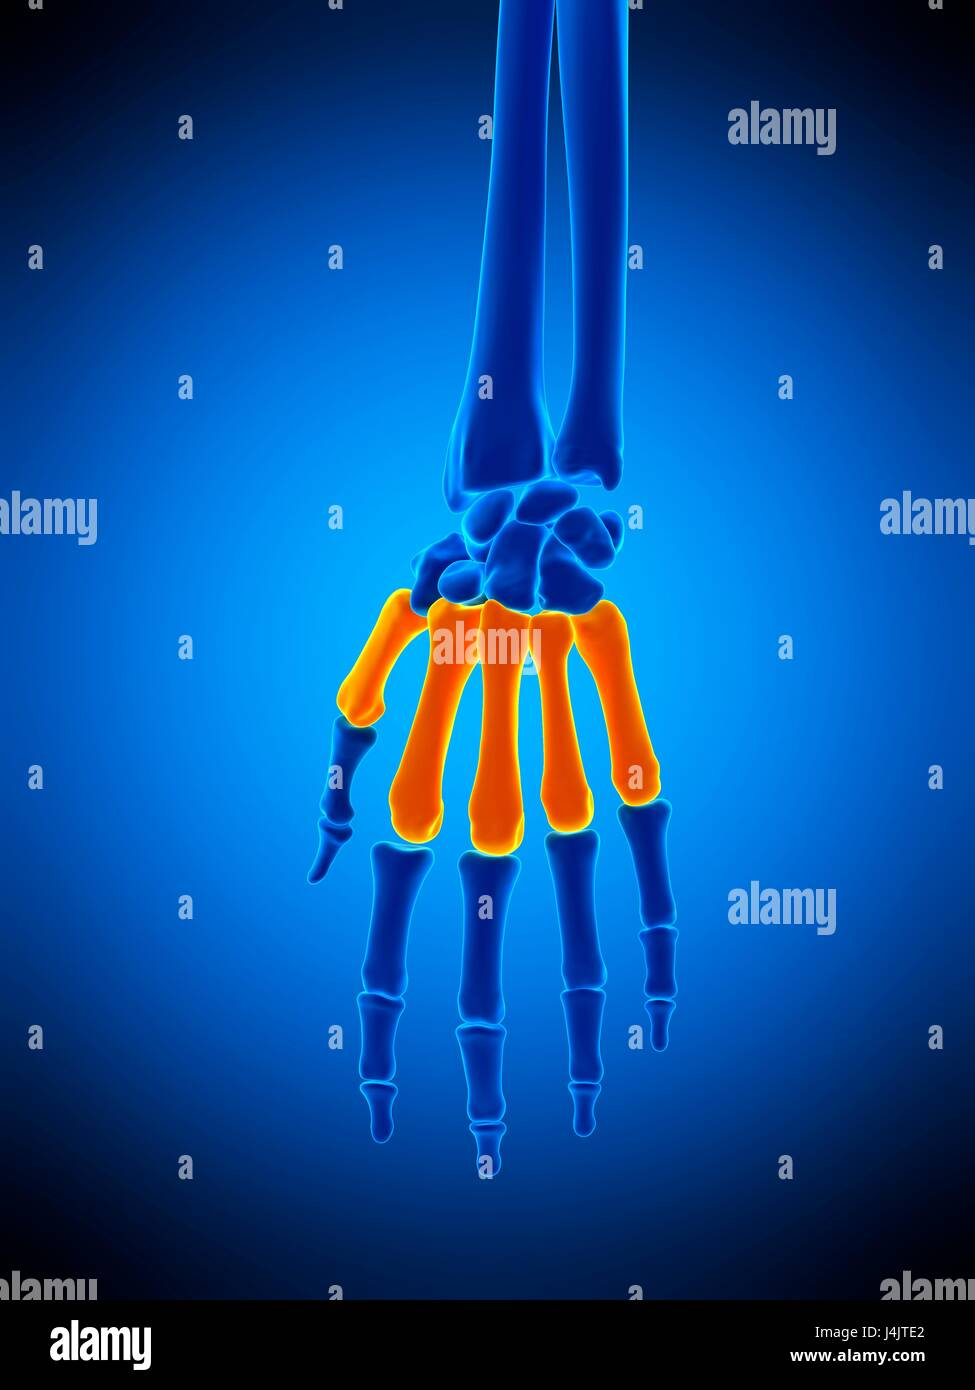 Illustration of the metacarpals bones. - Stock Image